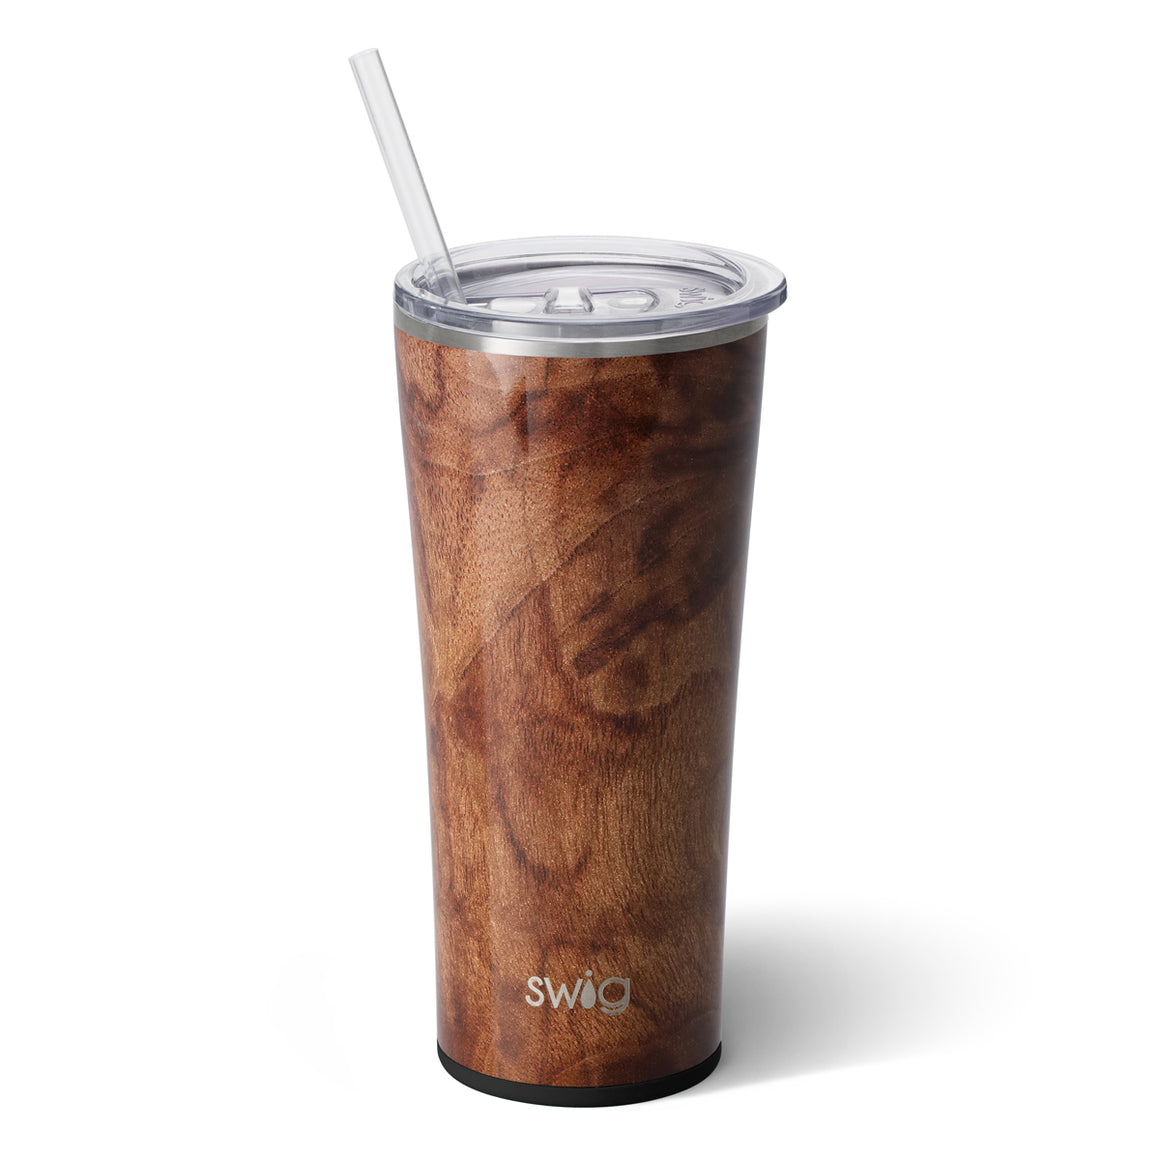 Swig 22oz Tumbler Black Walnut - The Preppy Bunny